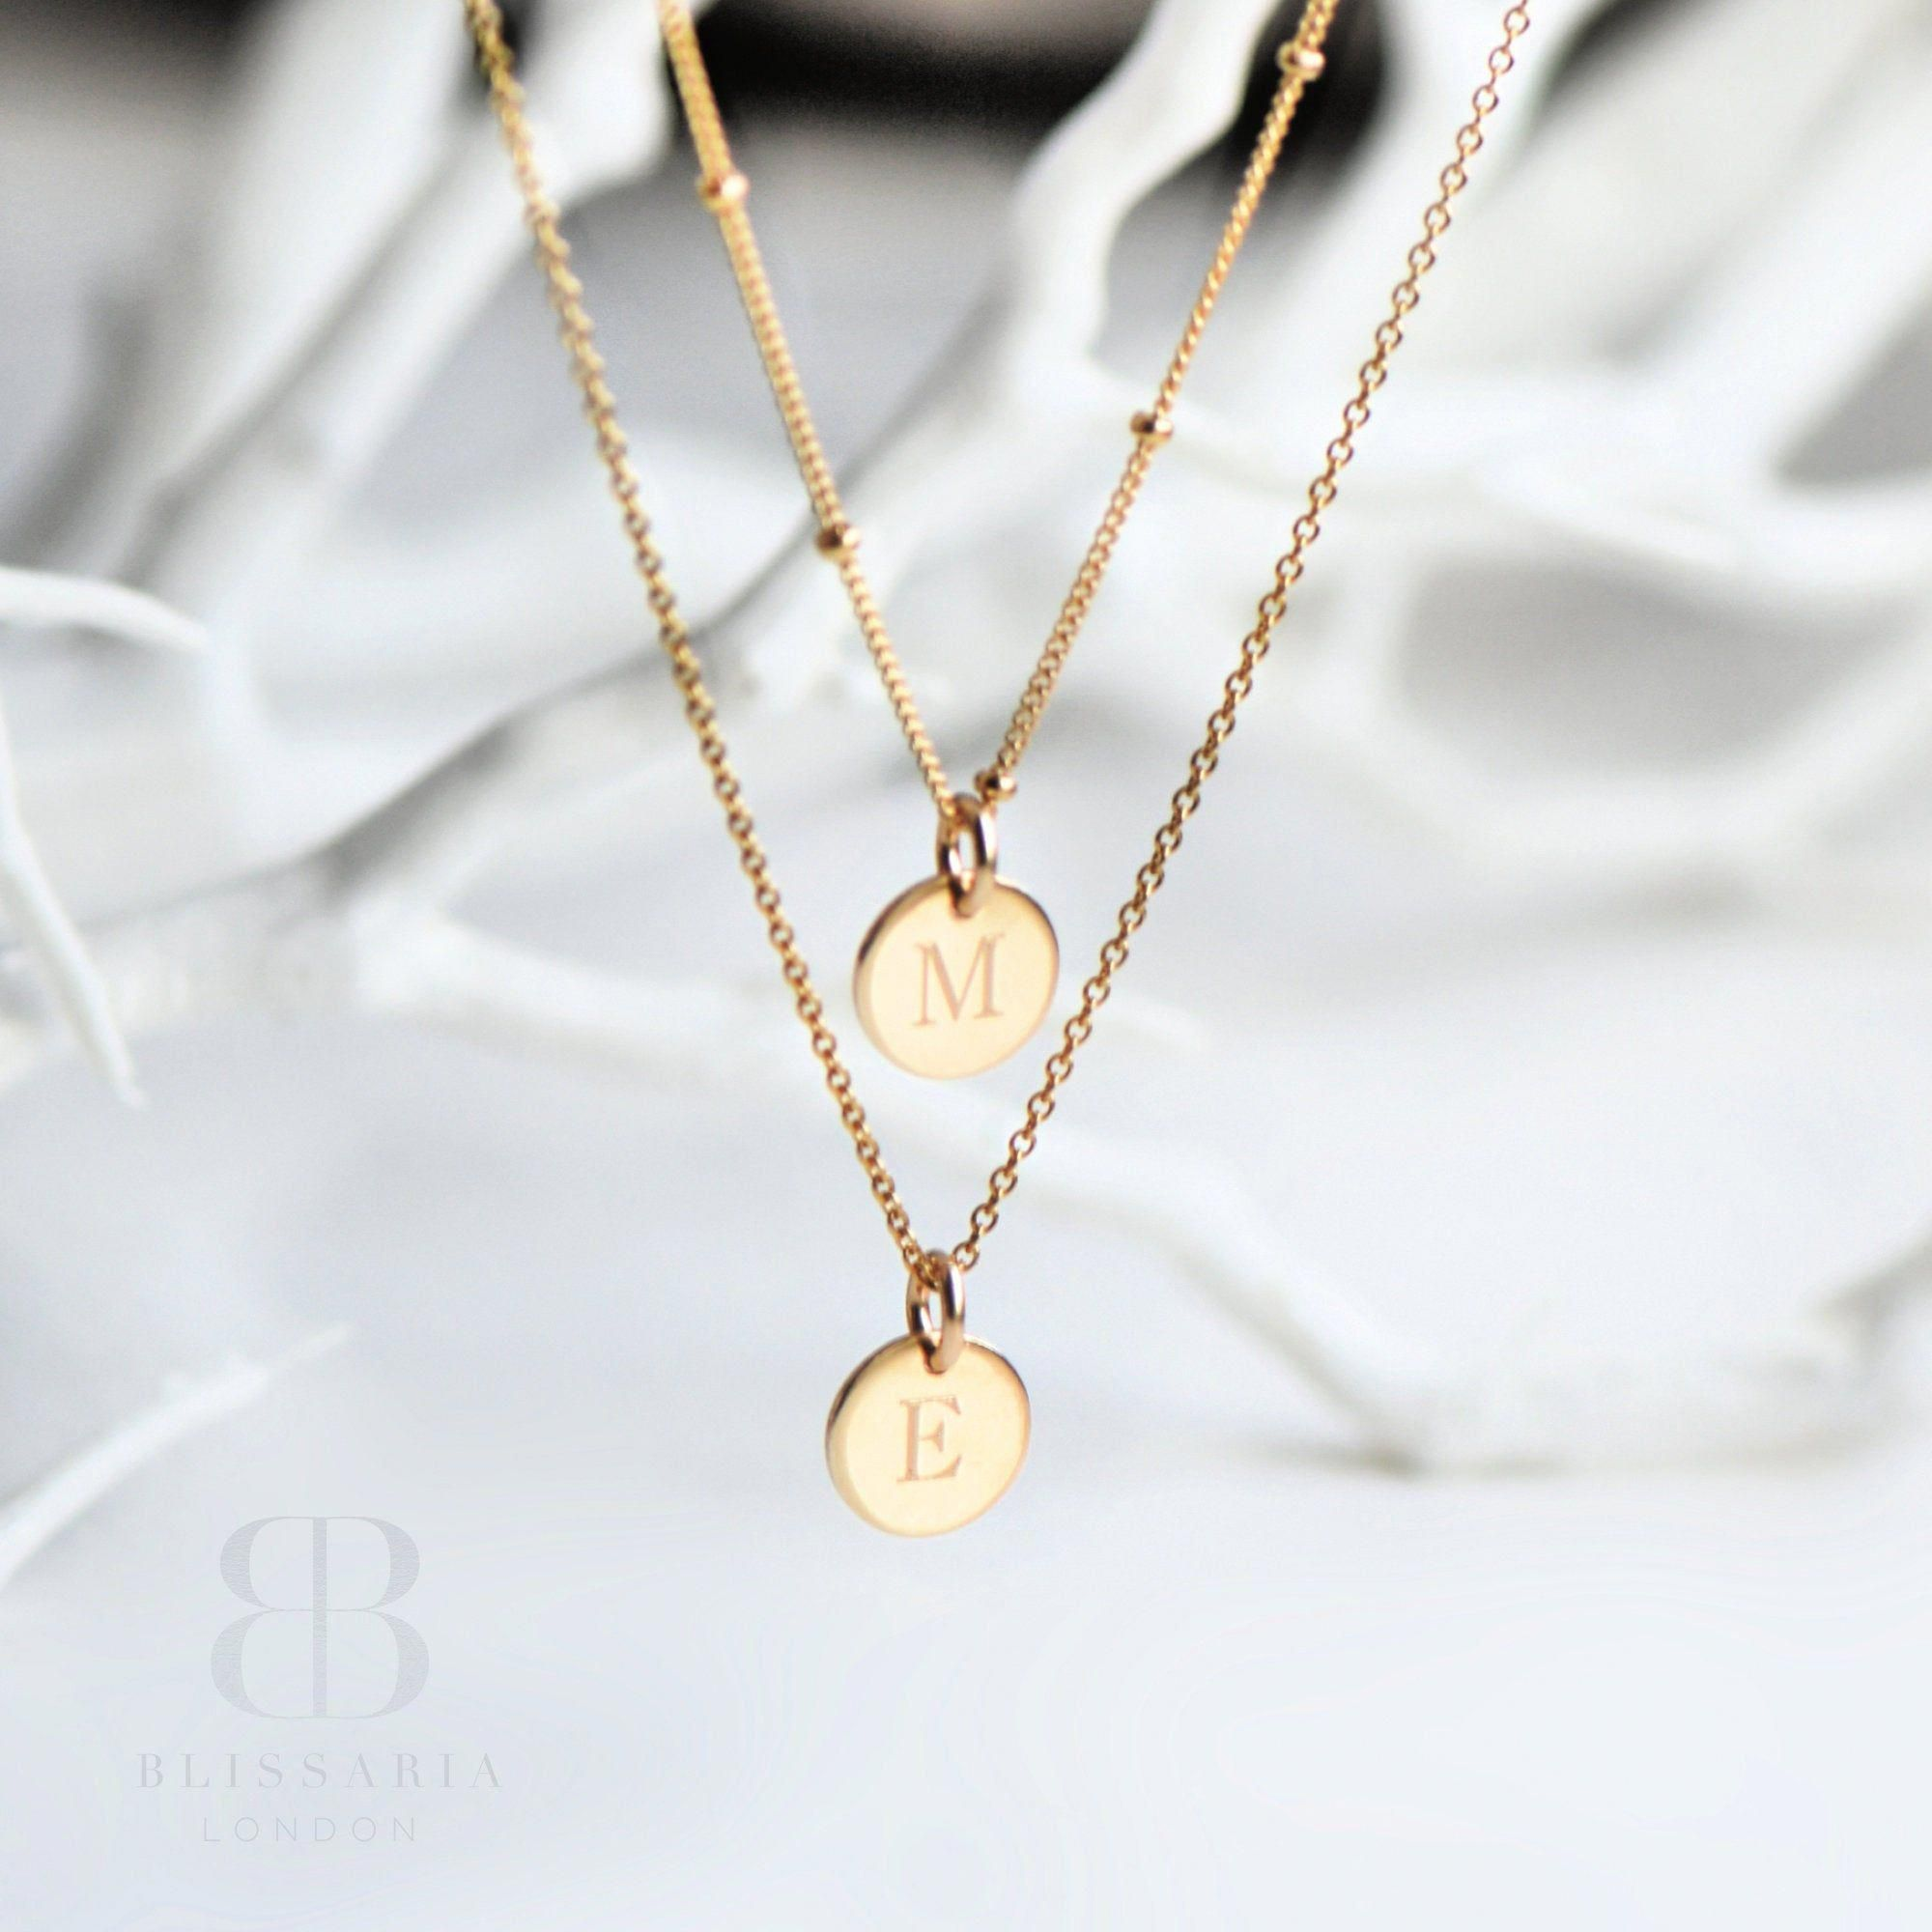 Gold pendant Letter charm necklace Gift ideas Personalized necklace bridesmaid gift Initial pendant Tiny 14k gold initial necklace